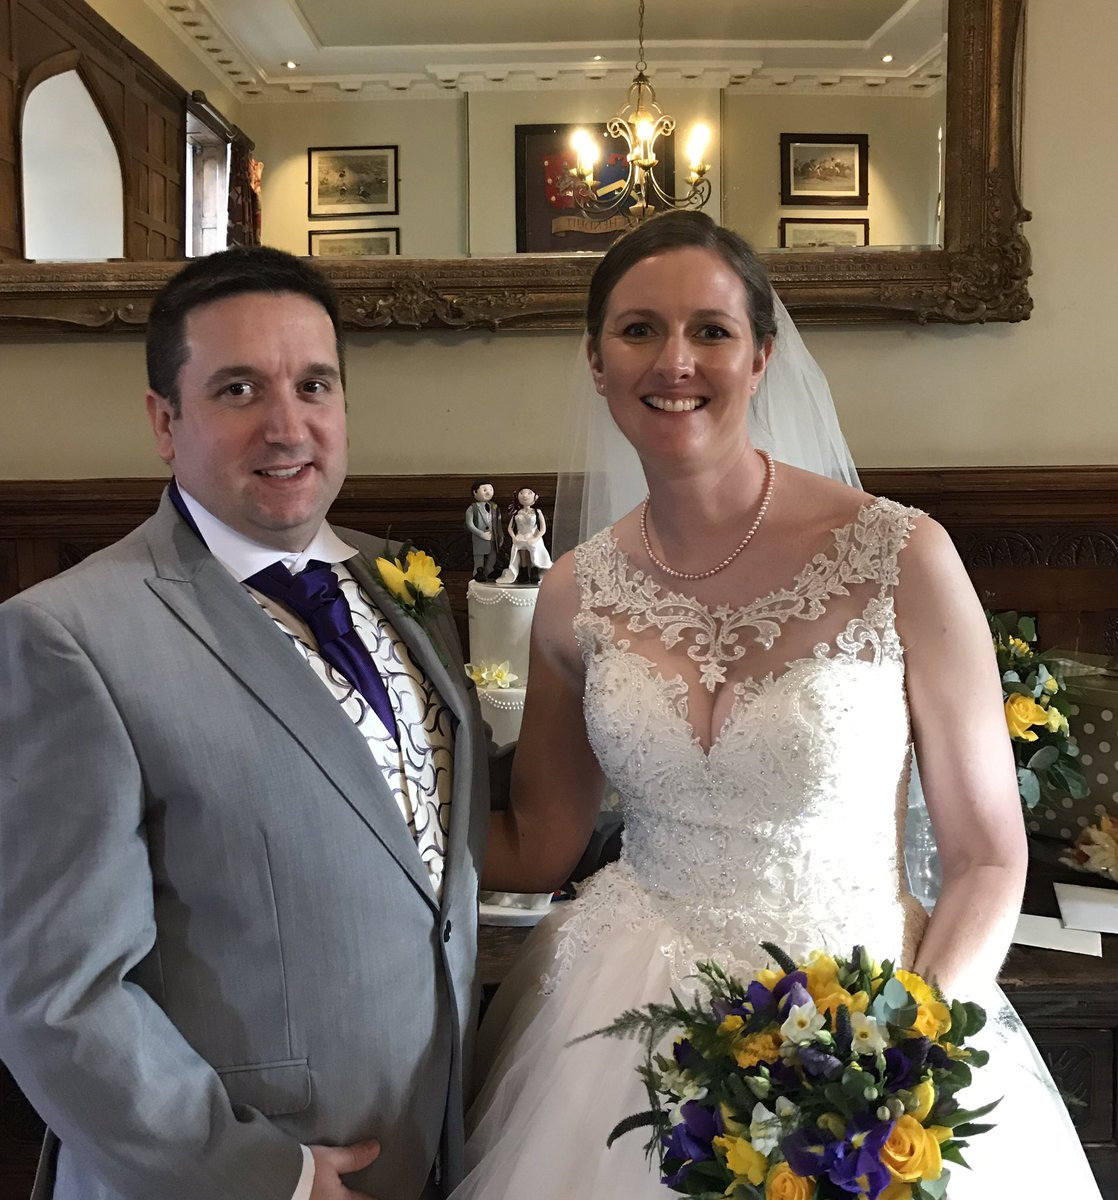 Today we are celebrating the wedding of our Chair, Debbie, and one of our committee members, Chris. Congratulations Debbie and Chris. Wishing you a long and happy life together ❤️ #Congratulations #Wedding #LookWhatRAFWARMAdid